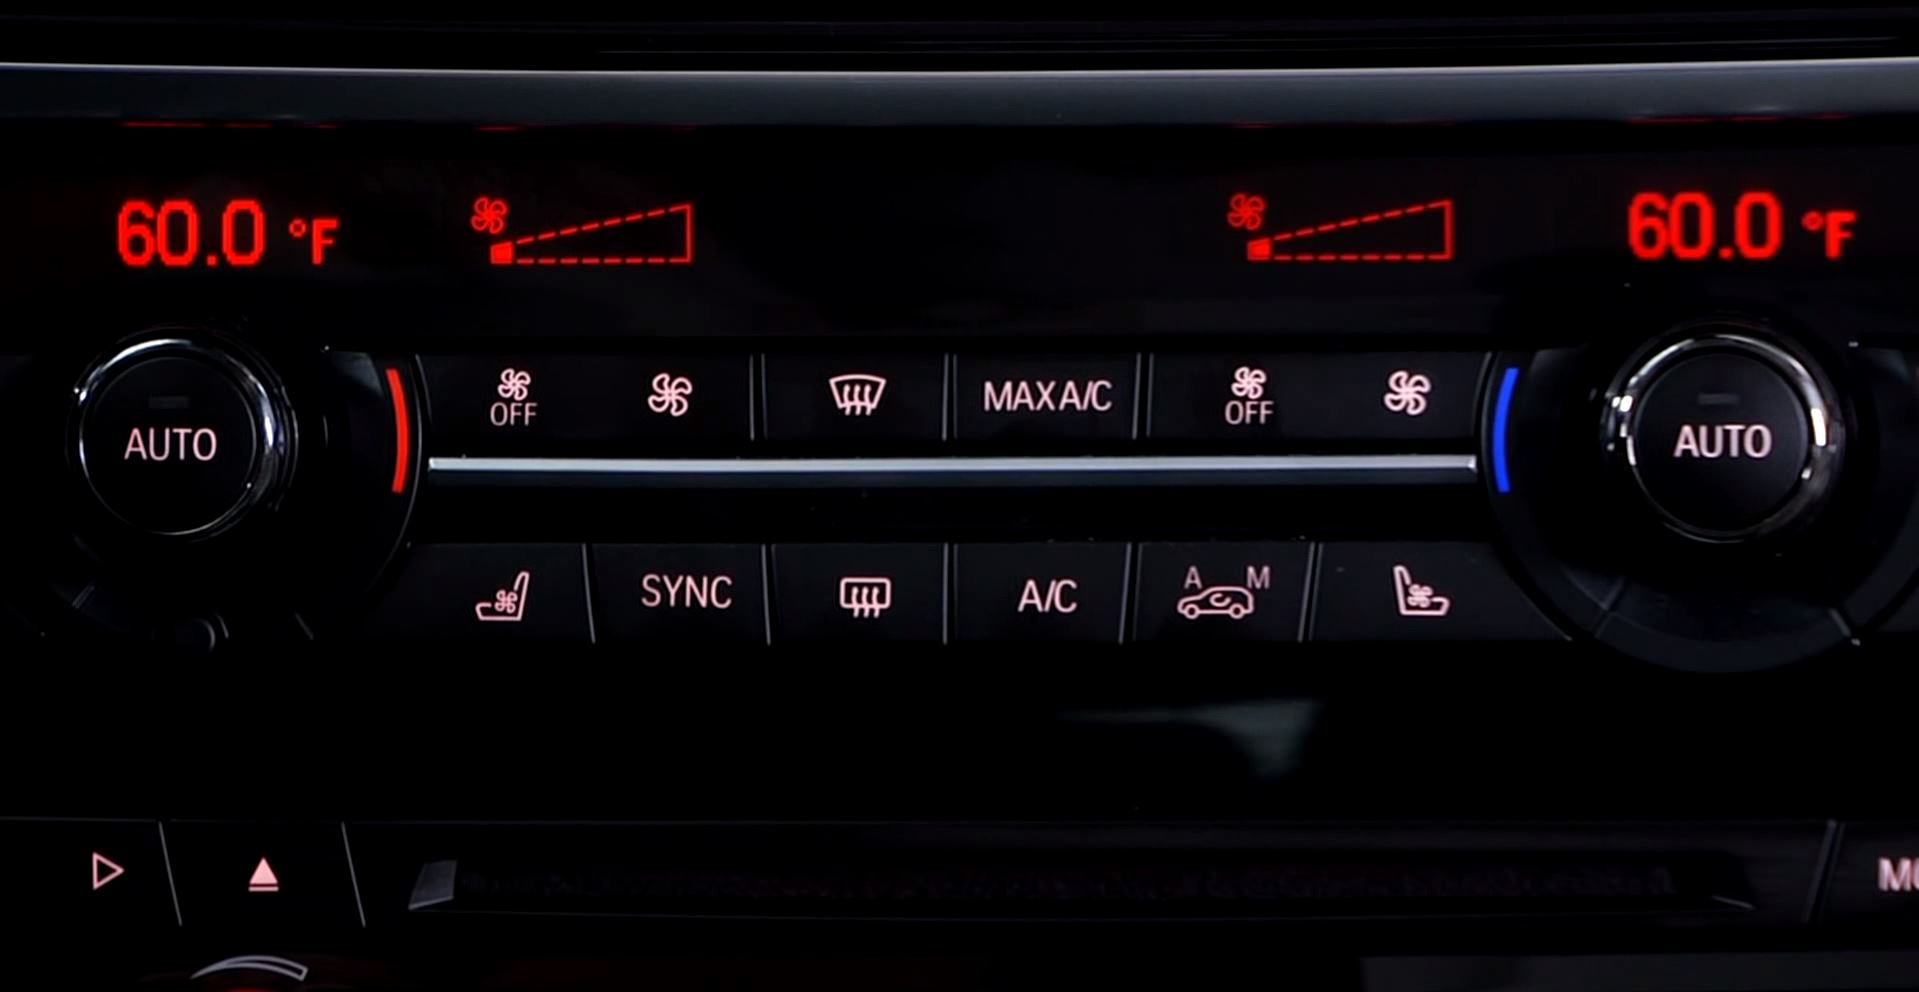 2014 Bmw X5 Hvac Buttons Functions Explained Autoevolution